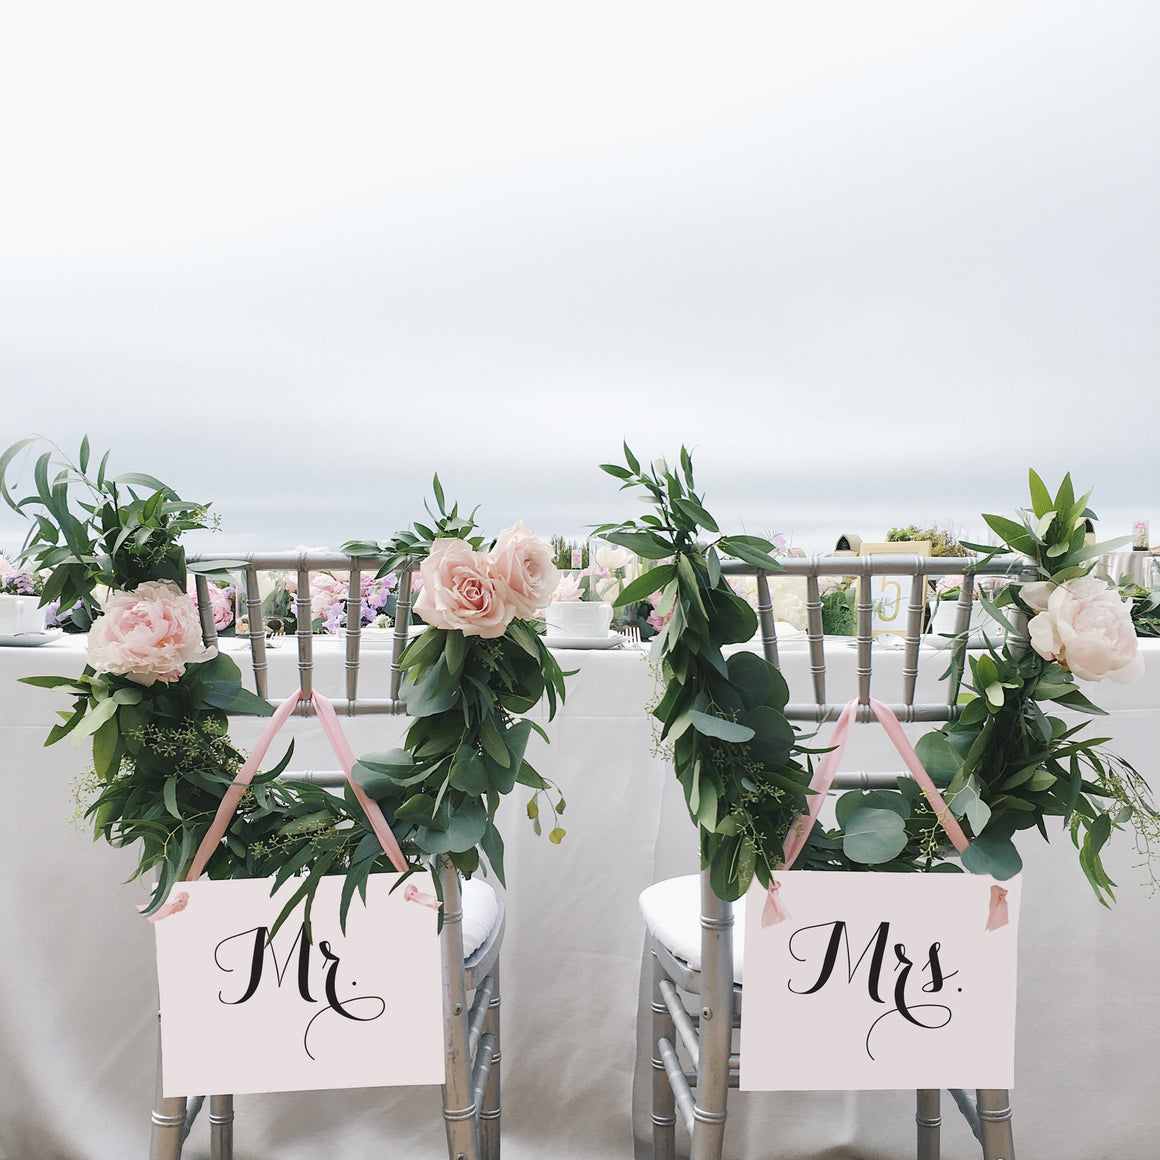 Mr. And Mrs. Bride Groom Chair Signs